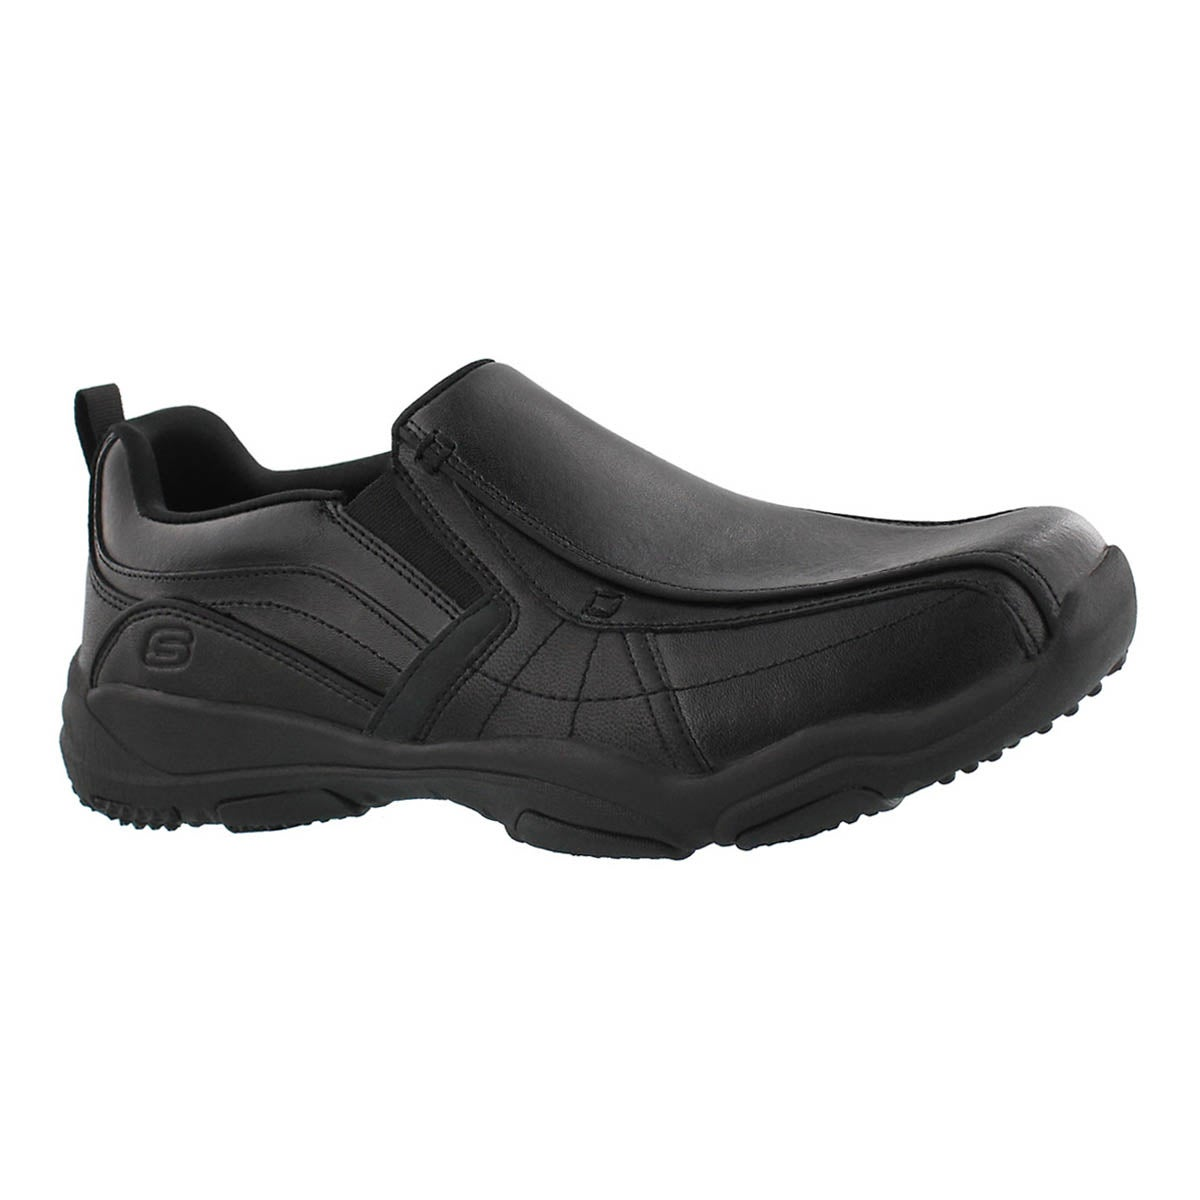 Men's LARSON BERTO black slip on shoes